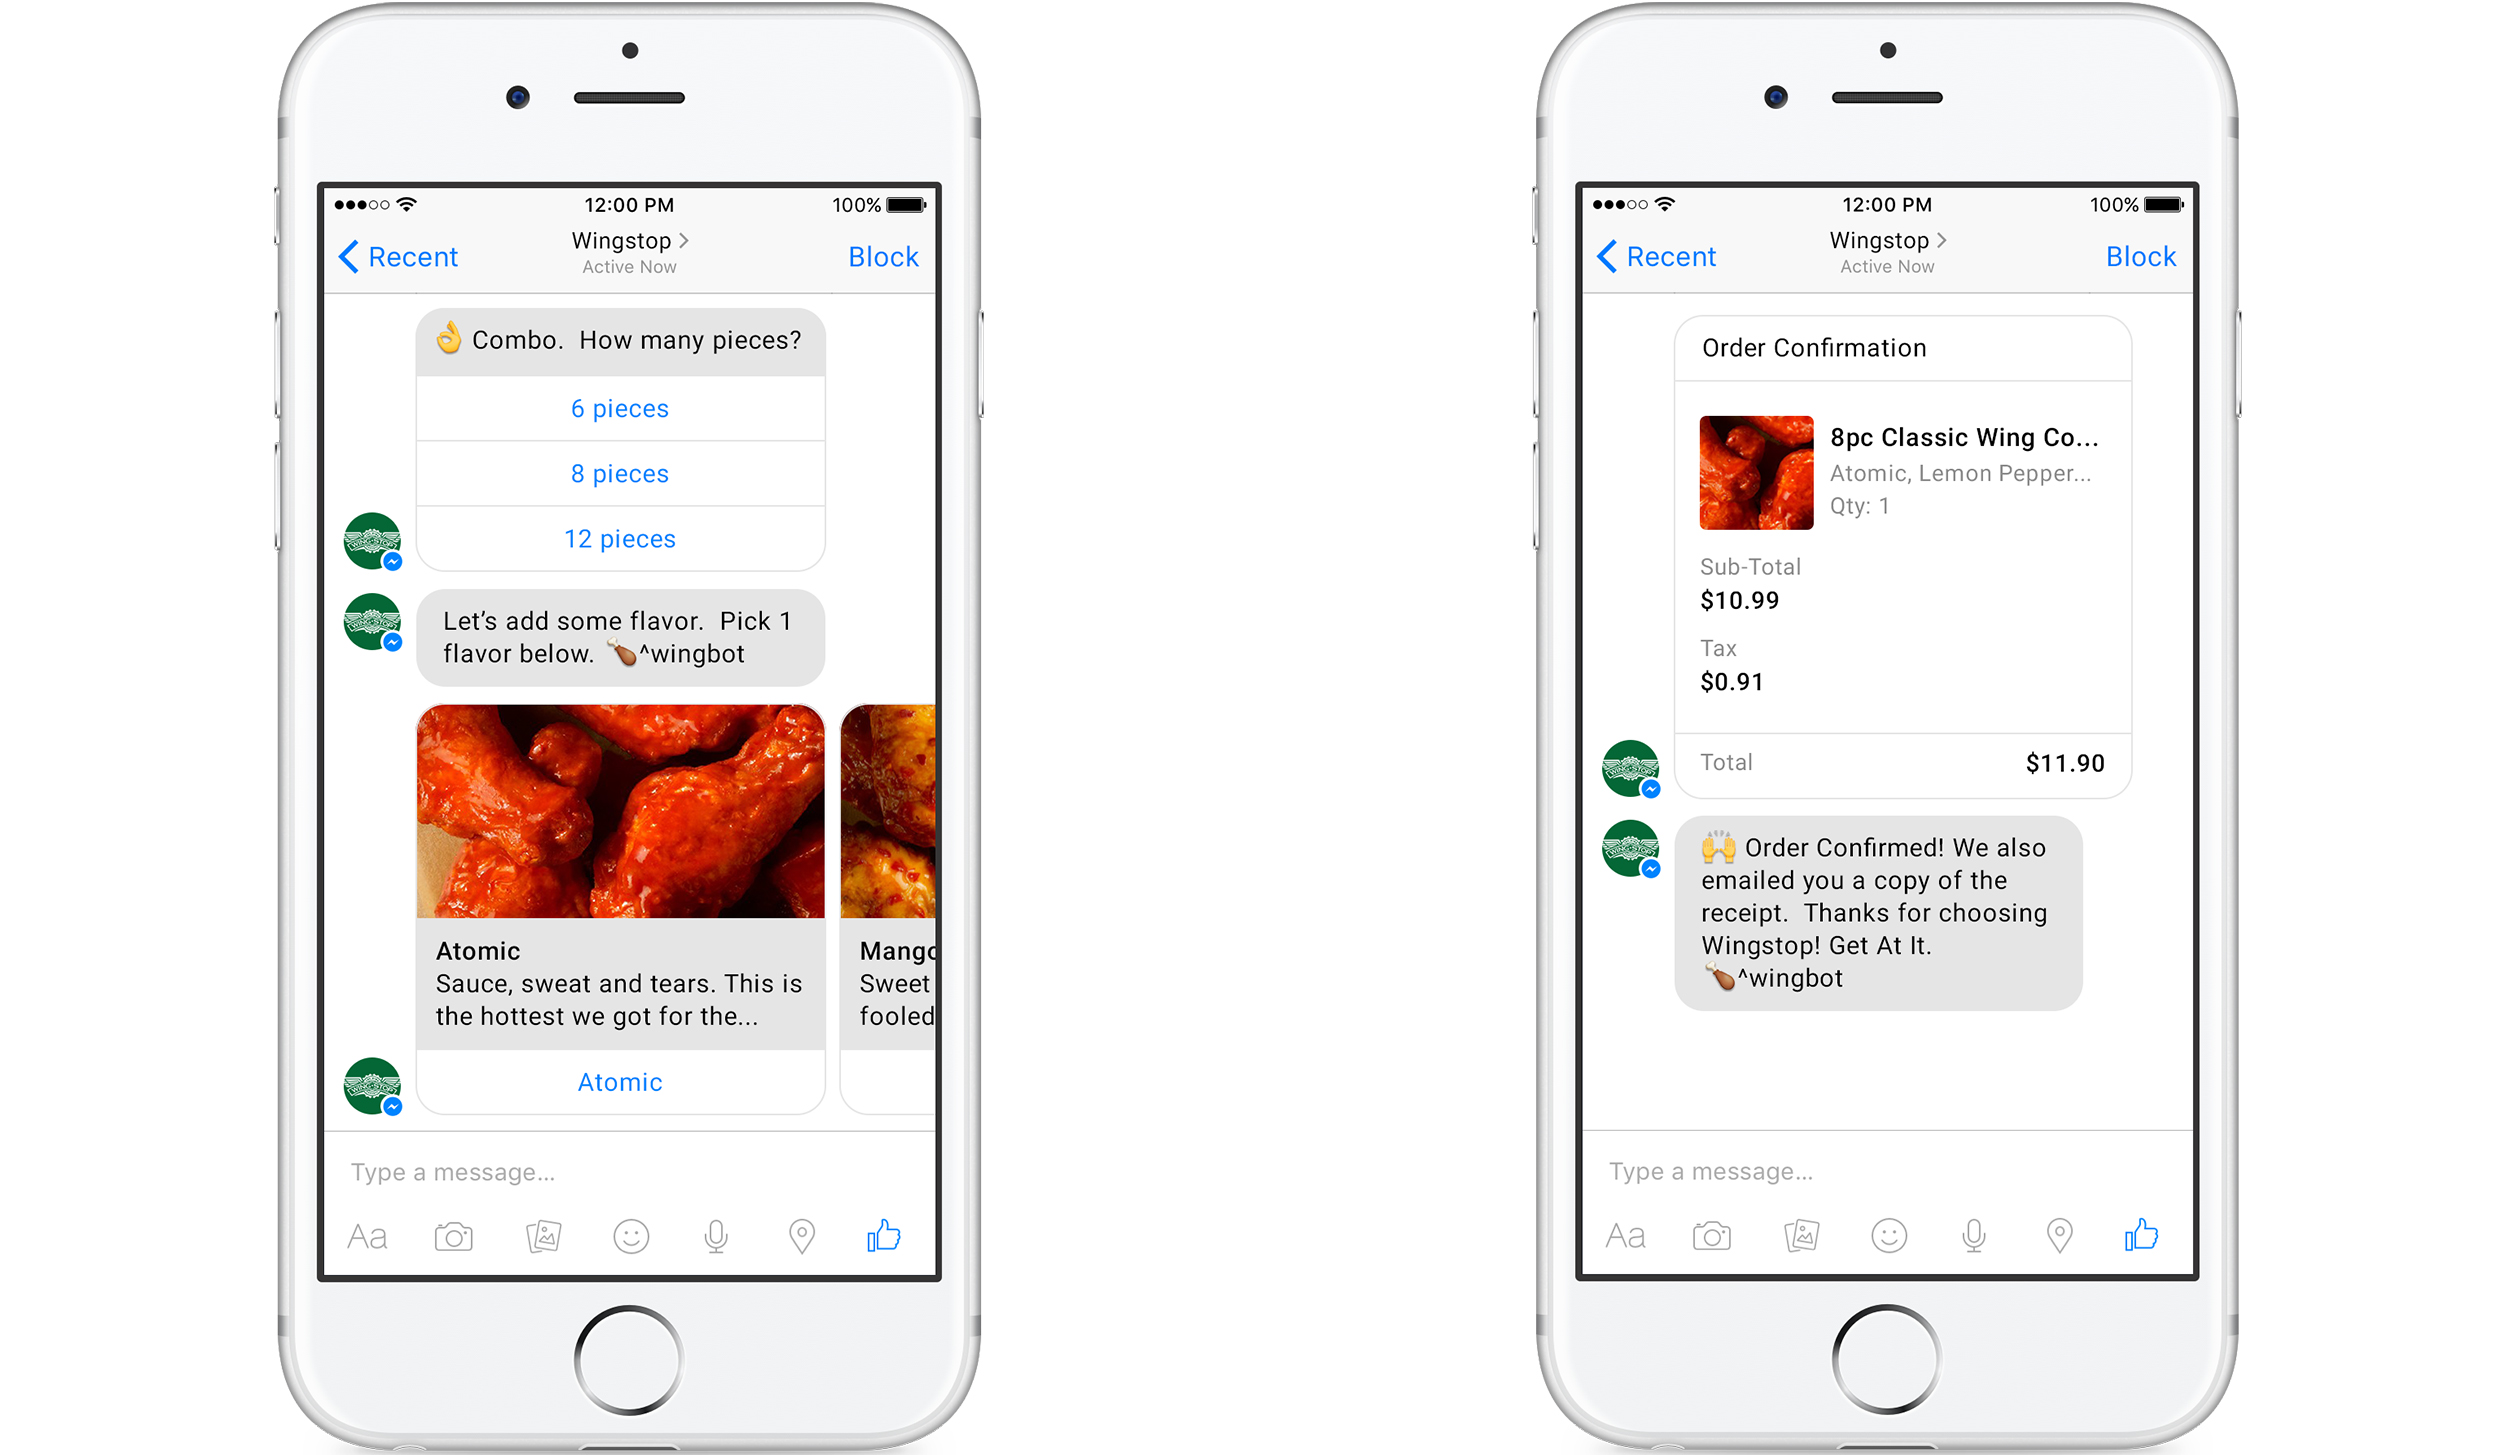 Chicken wing restaurant chain Wingstop is debuting social ordering via Twitter and Facebook Messenger.